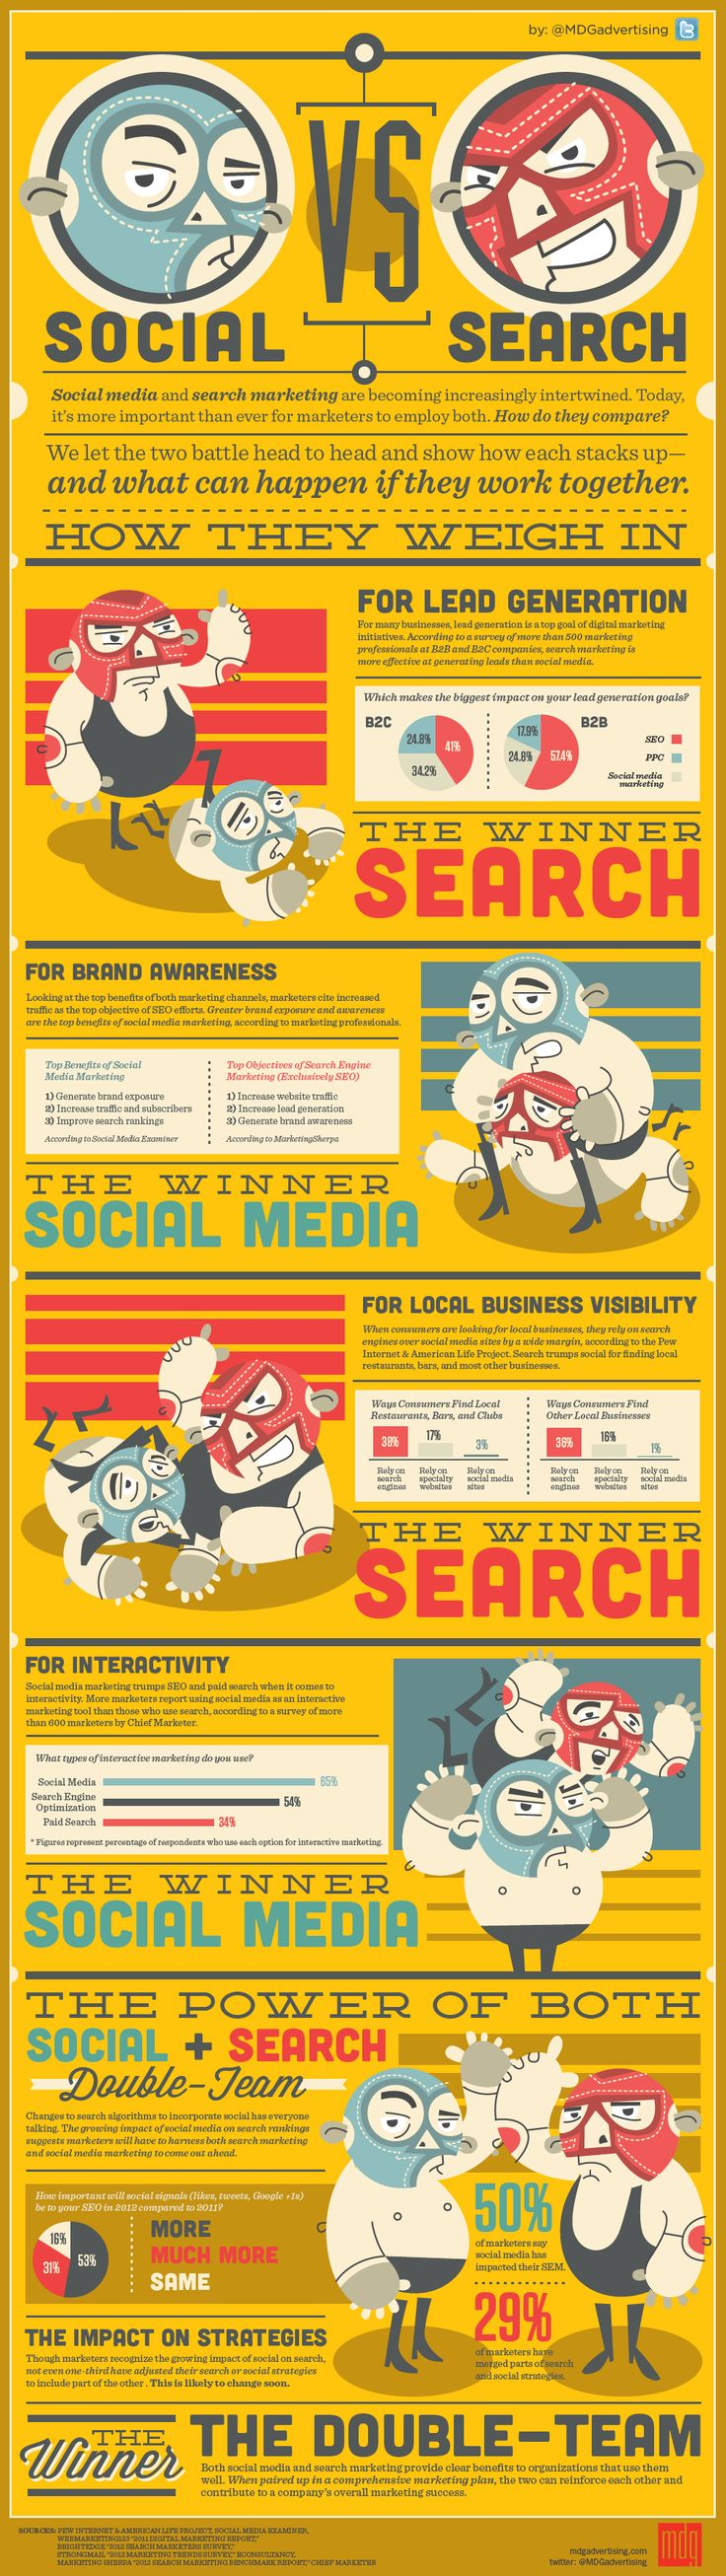 MDG Advertising has put together an awesome infographic: Social VS. Search. CSearch Marketing, Internet Marketing, Social Marketing, Social Media Marketing, Search Engineering Optimism, Content Marketing, Business Marketing, Infographic, Socialmedia